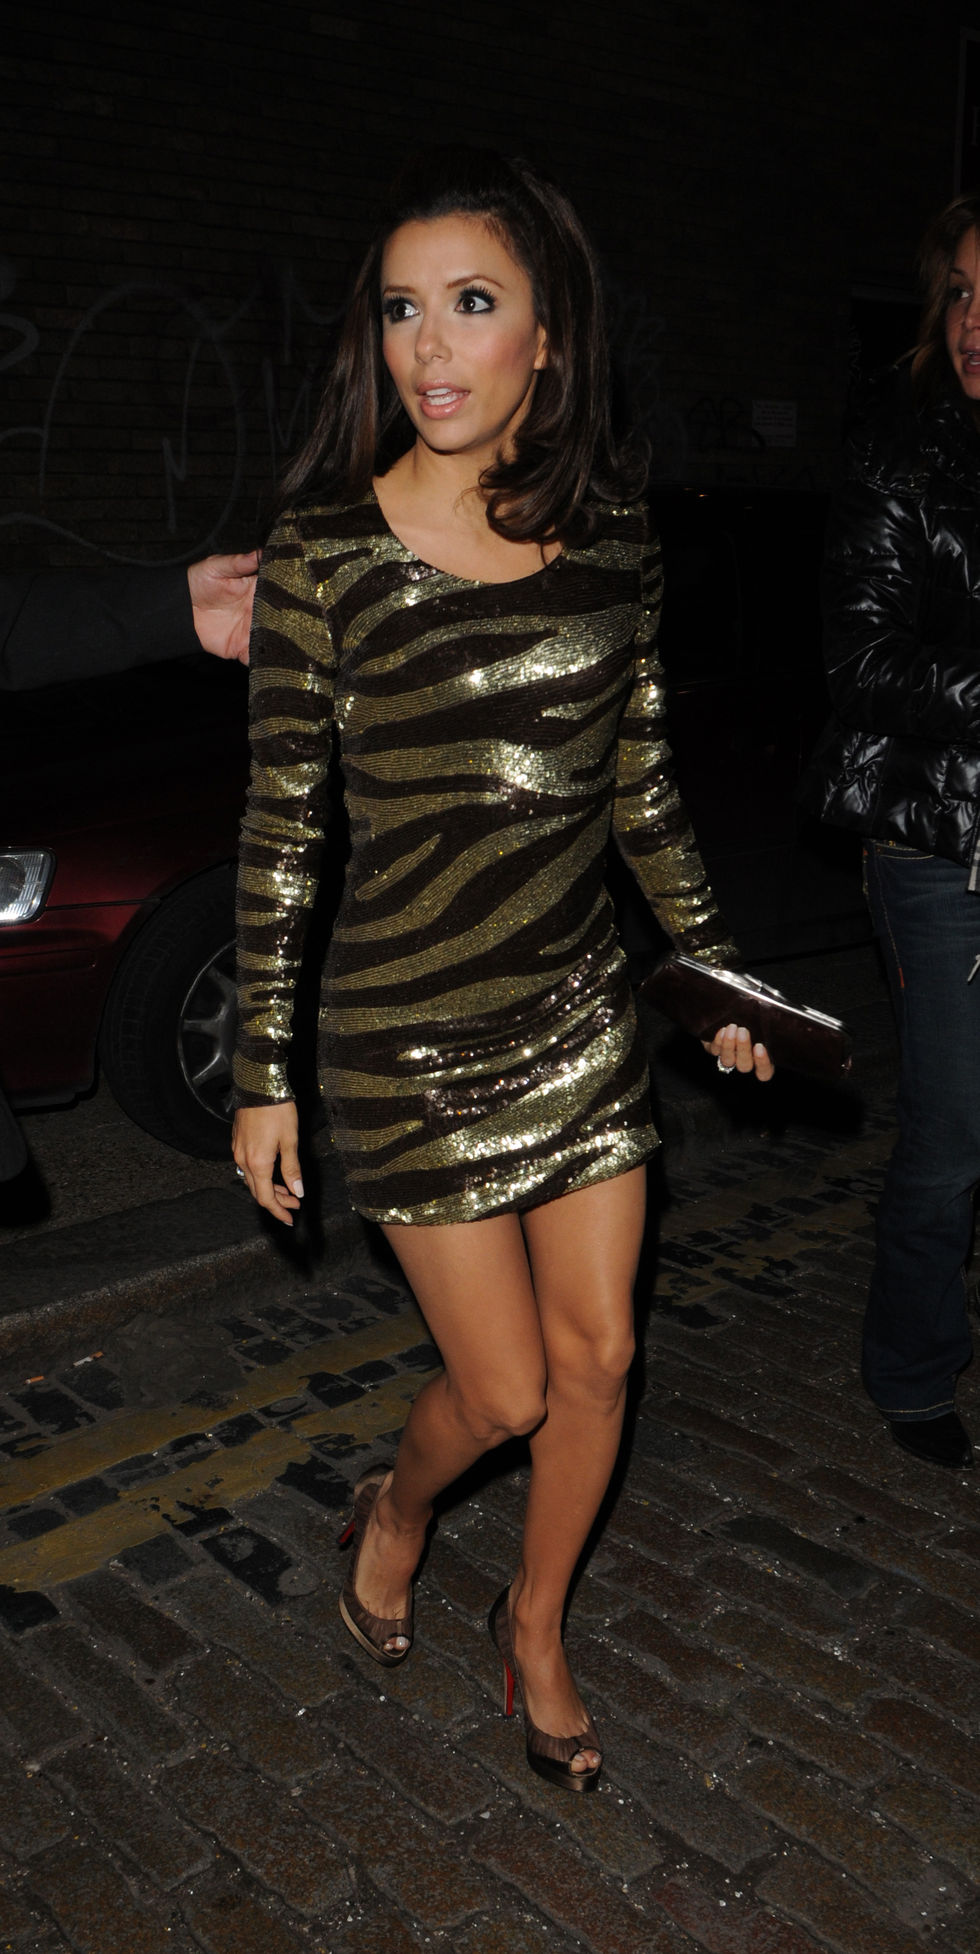 eva-longoria-candids-in-london-01